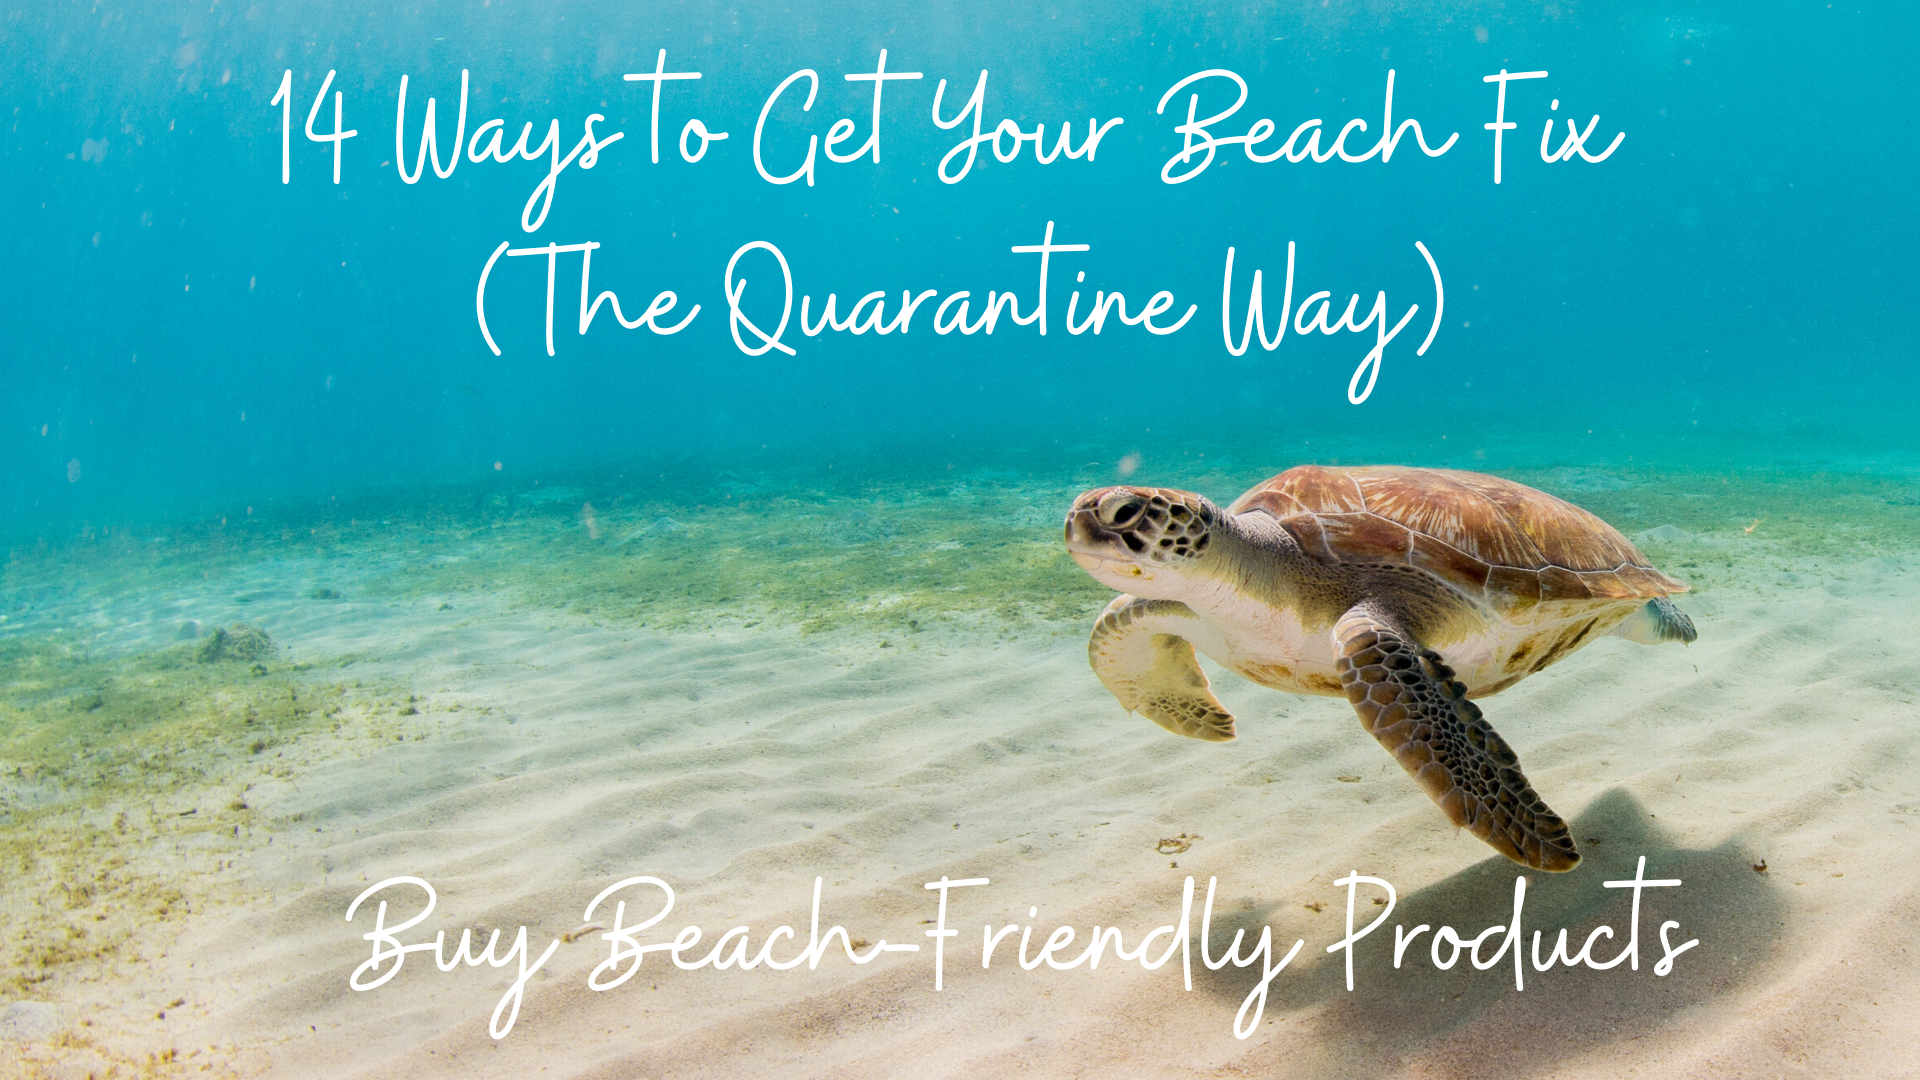 14 Ways to Get Your Beach Fix (The Quarantine Way) – #8 Buy Beach-Friendly Products